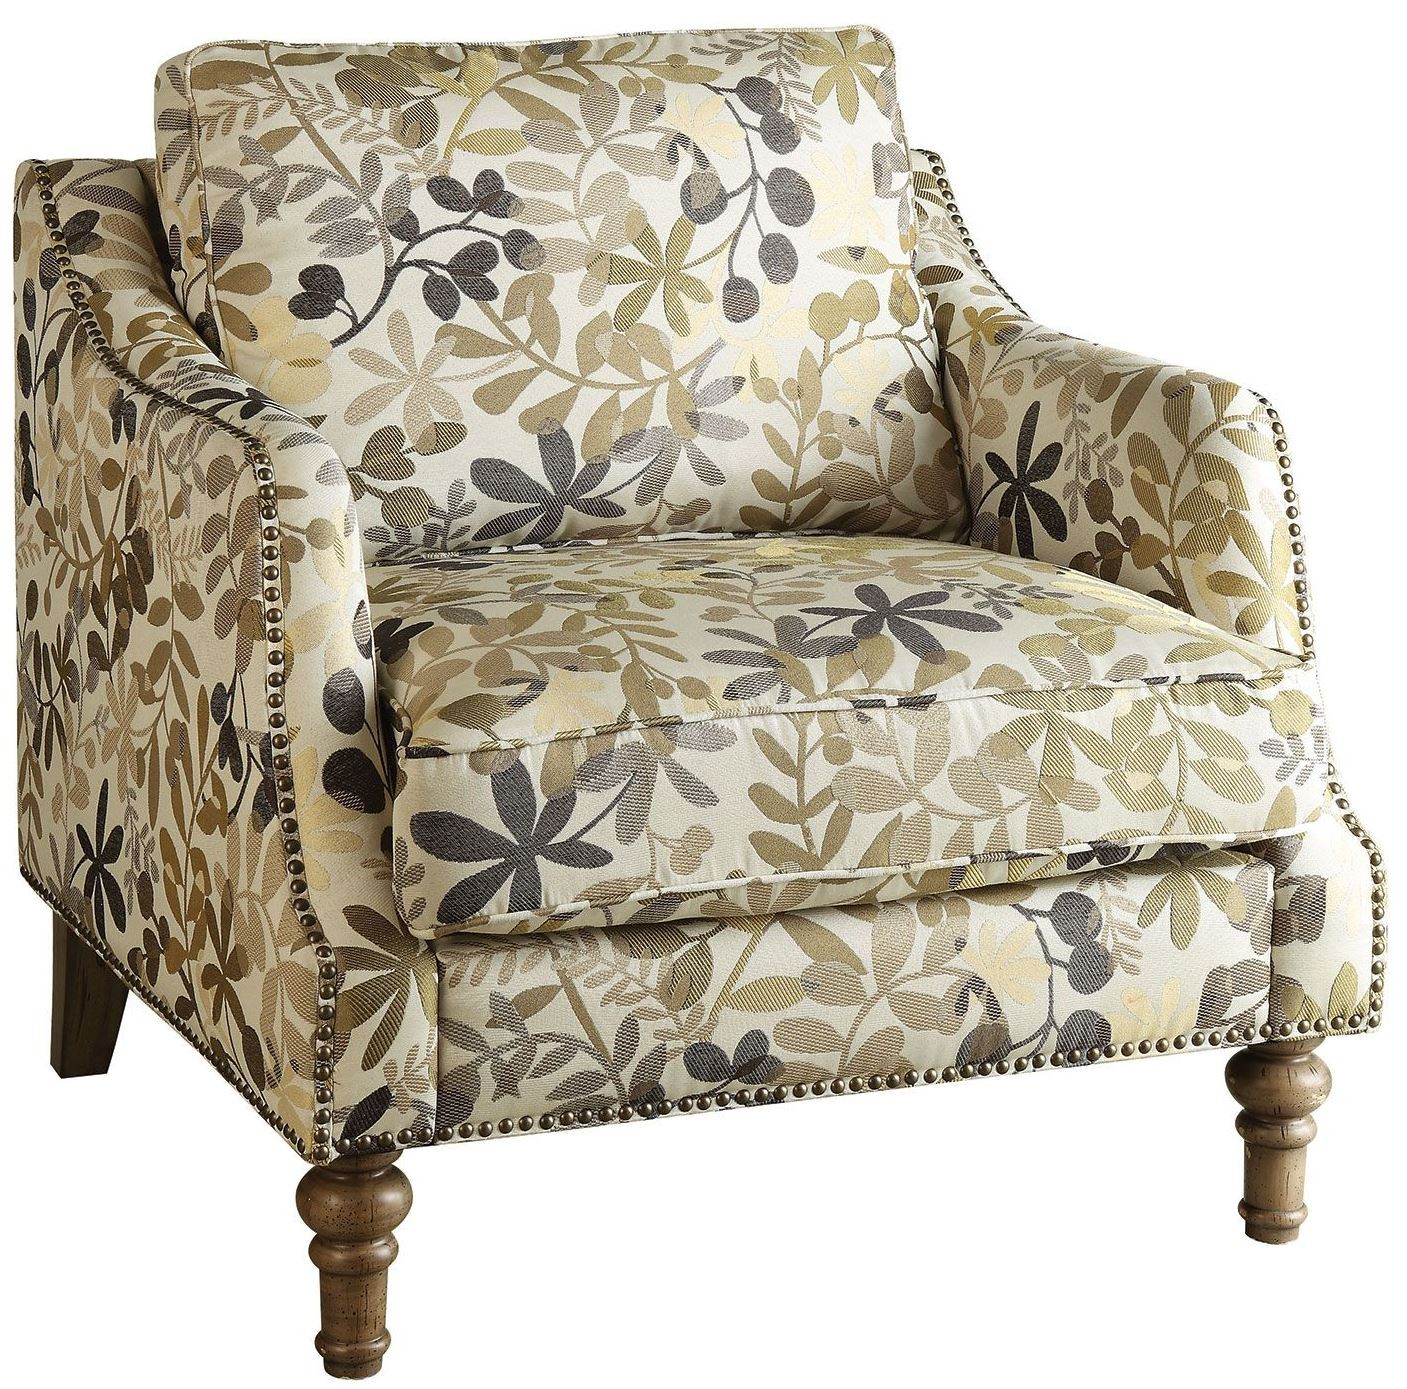 Native Print Accent Chair: Leaf Print Beige Fabric Accent Chair From Coaster (902456